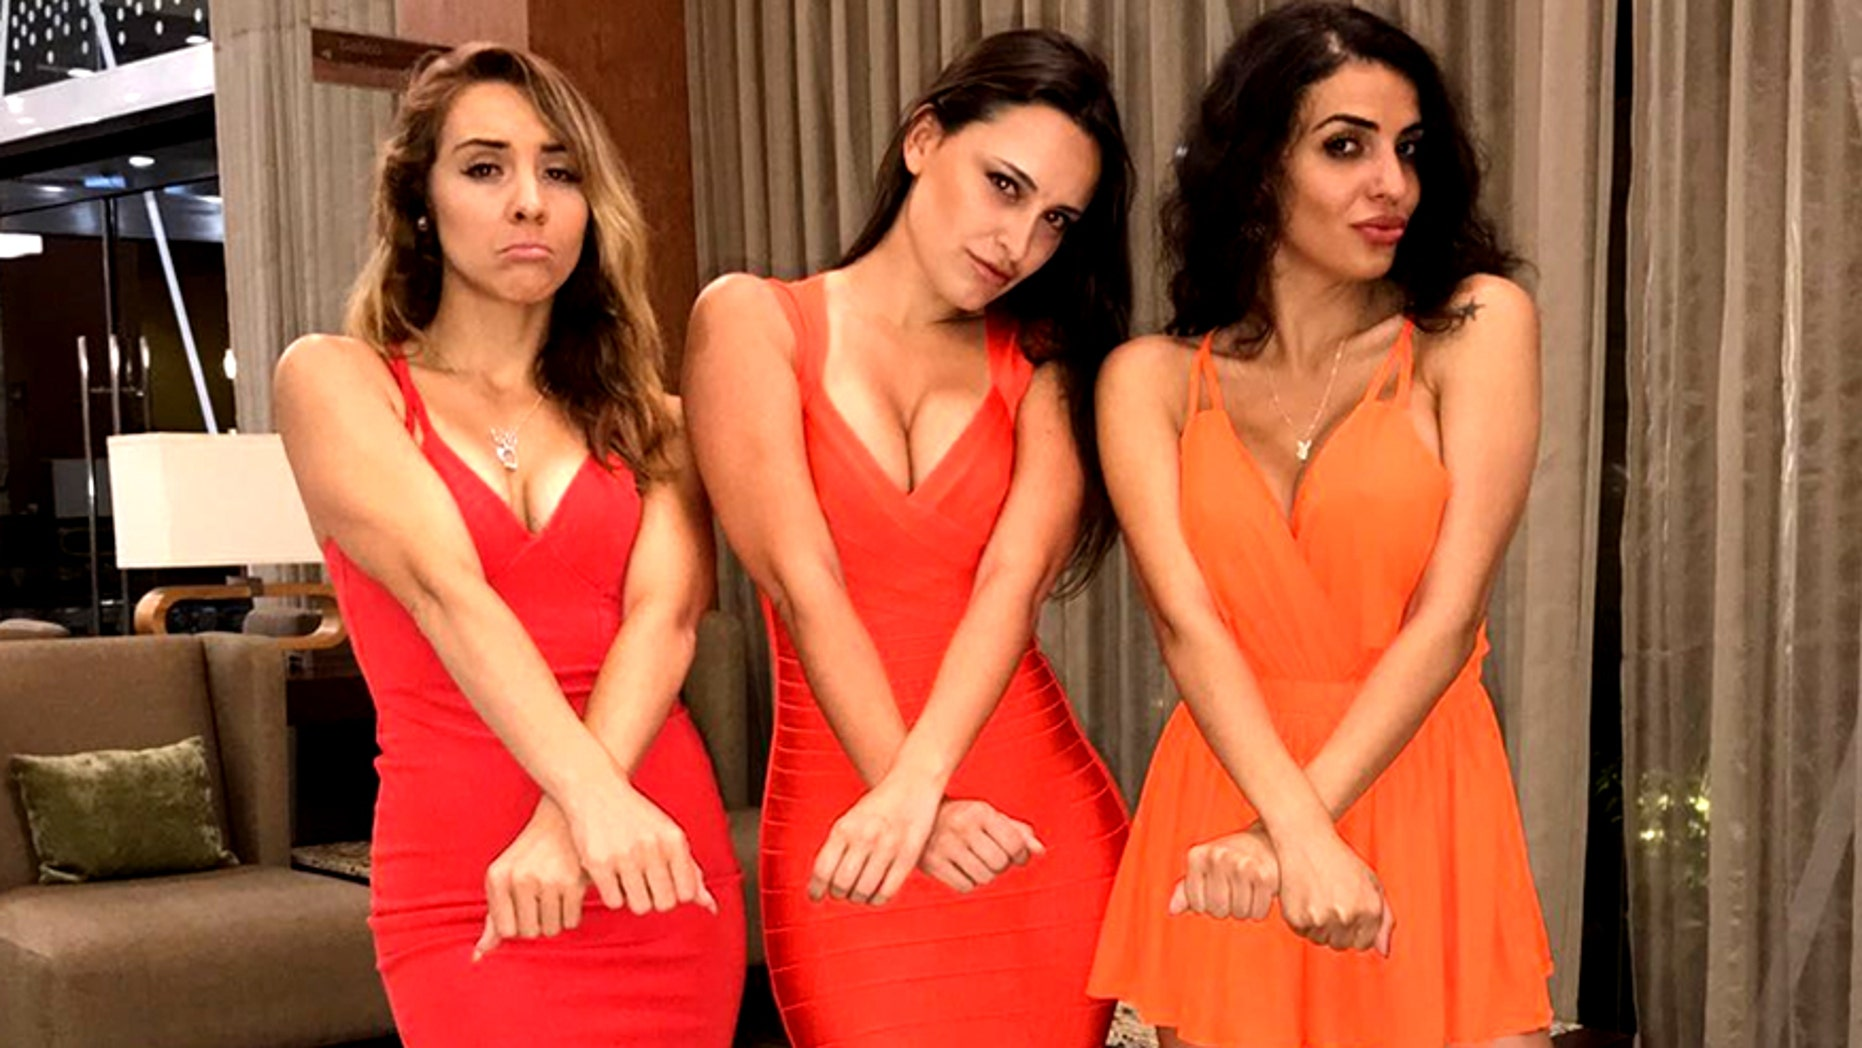 Distraught Playboy Bunnies jailed in Mexico, 'begged for food and